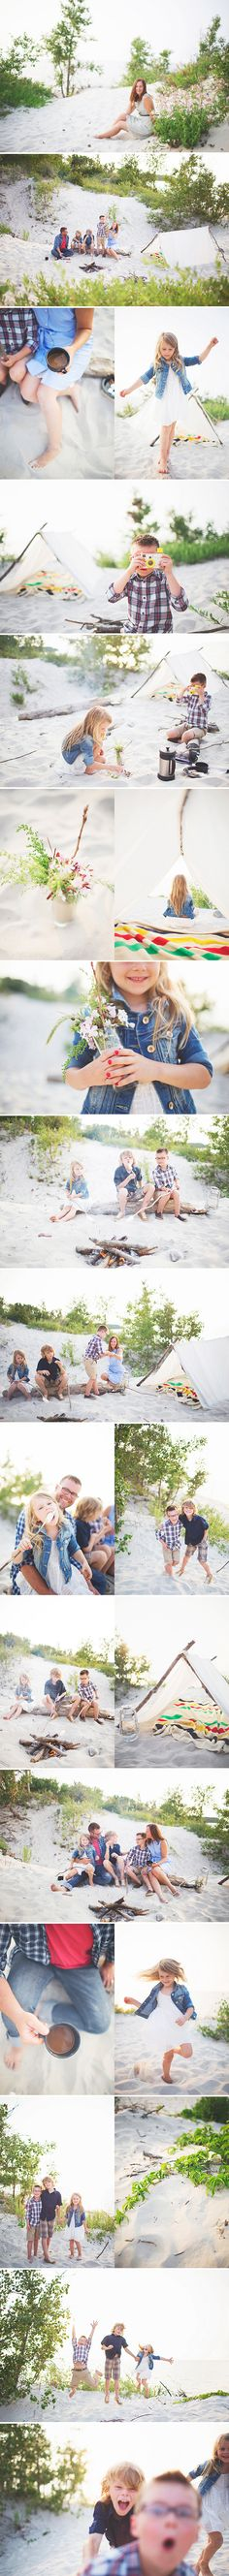 The Poulin family » simply rosie photography